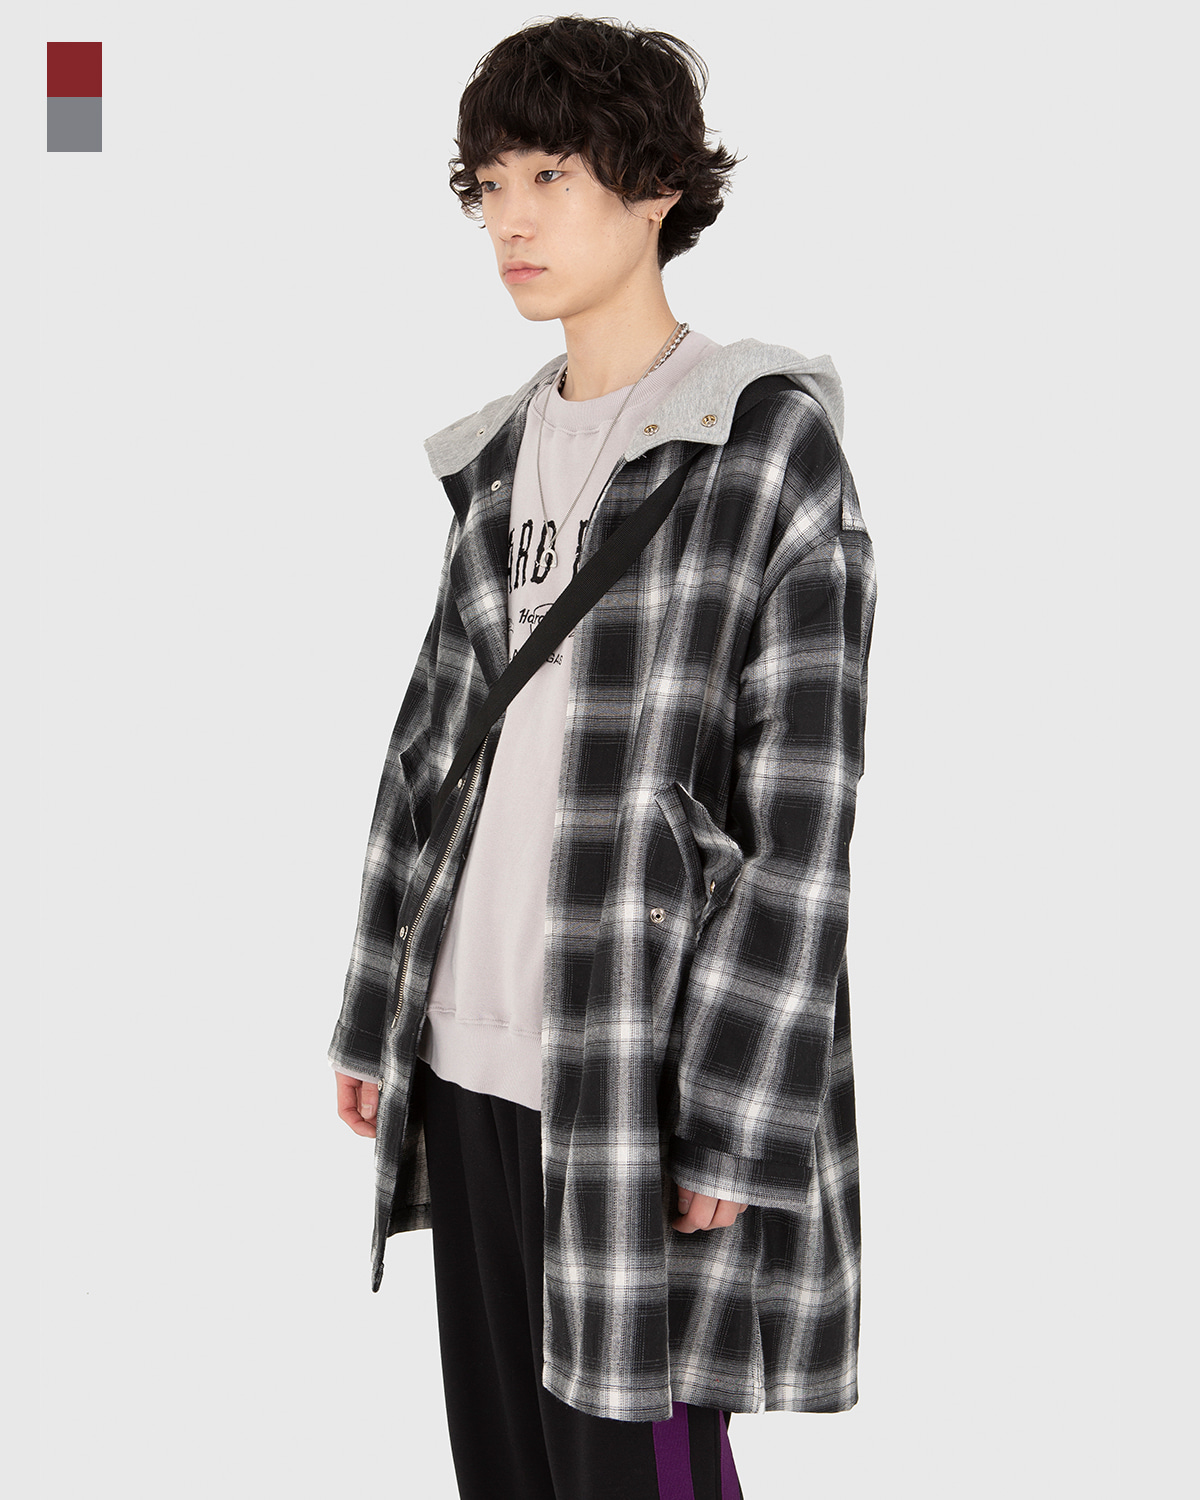 raucohouse-TARTAN CHECK HOODED LONG JACKET - RAUCO HOUSE♡韓國男裝上衣